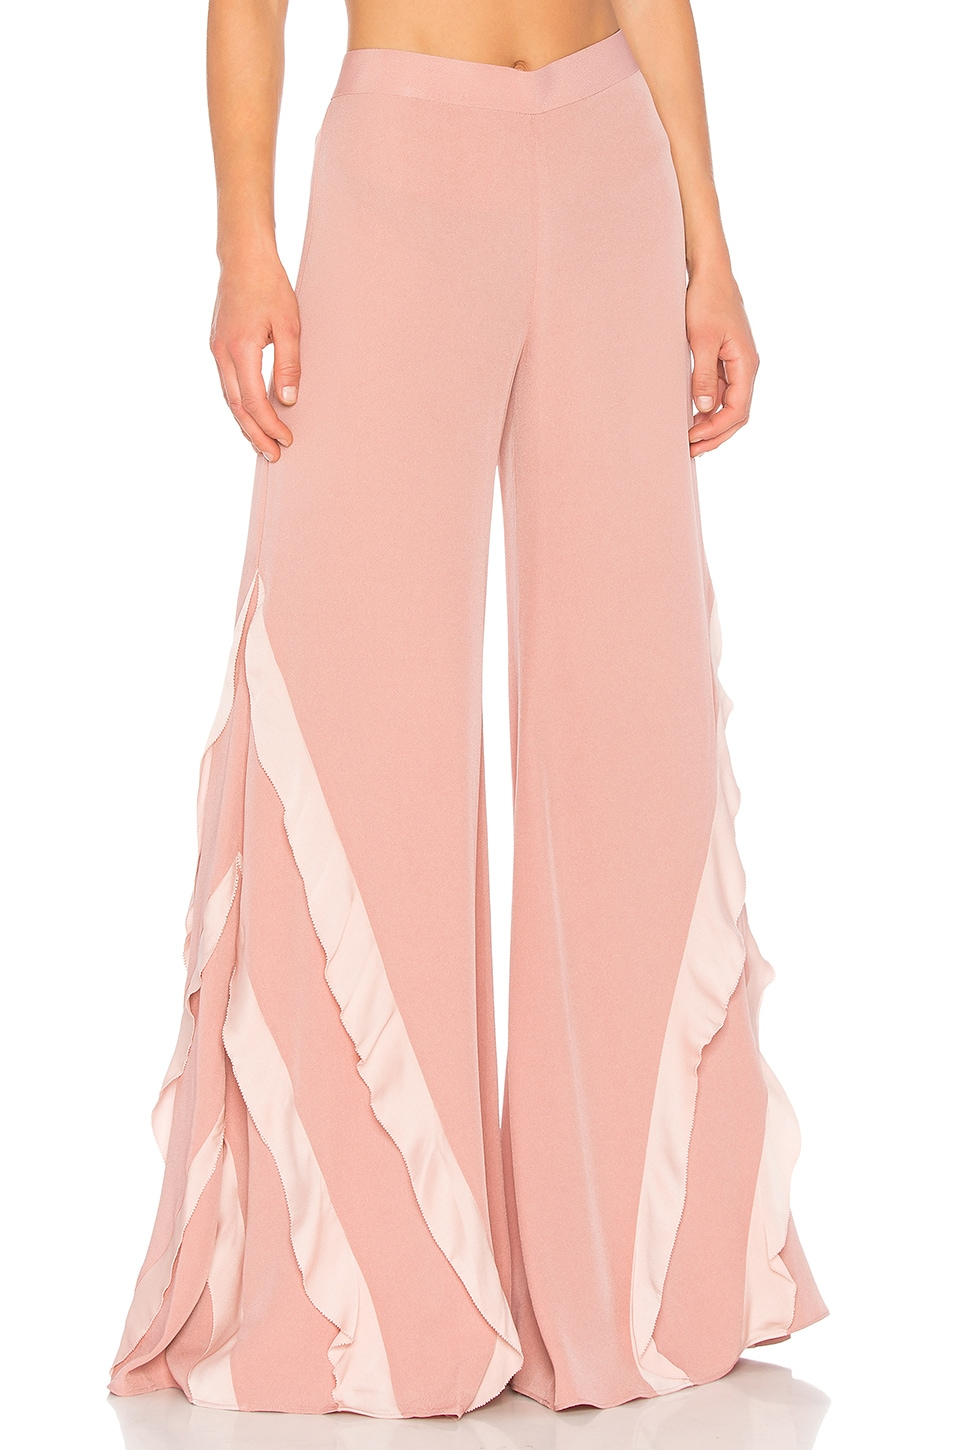 Alexis Julless Pant in Rose